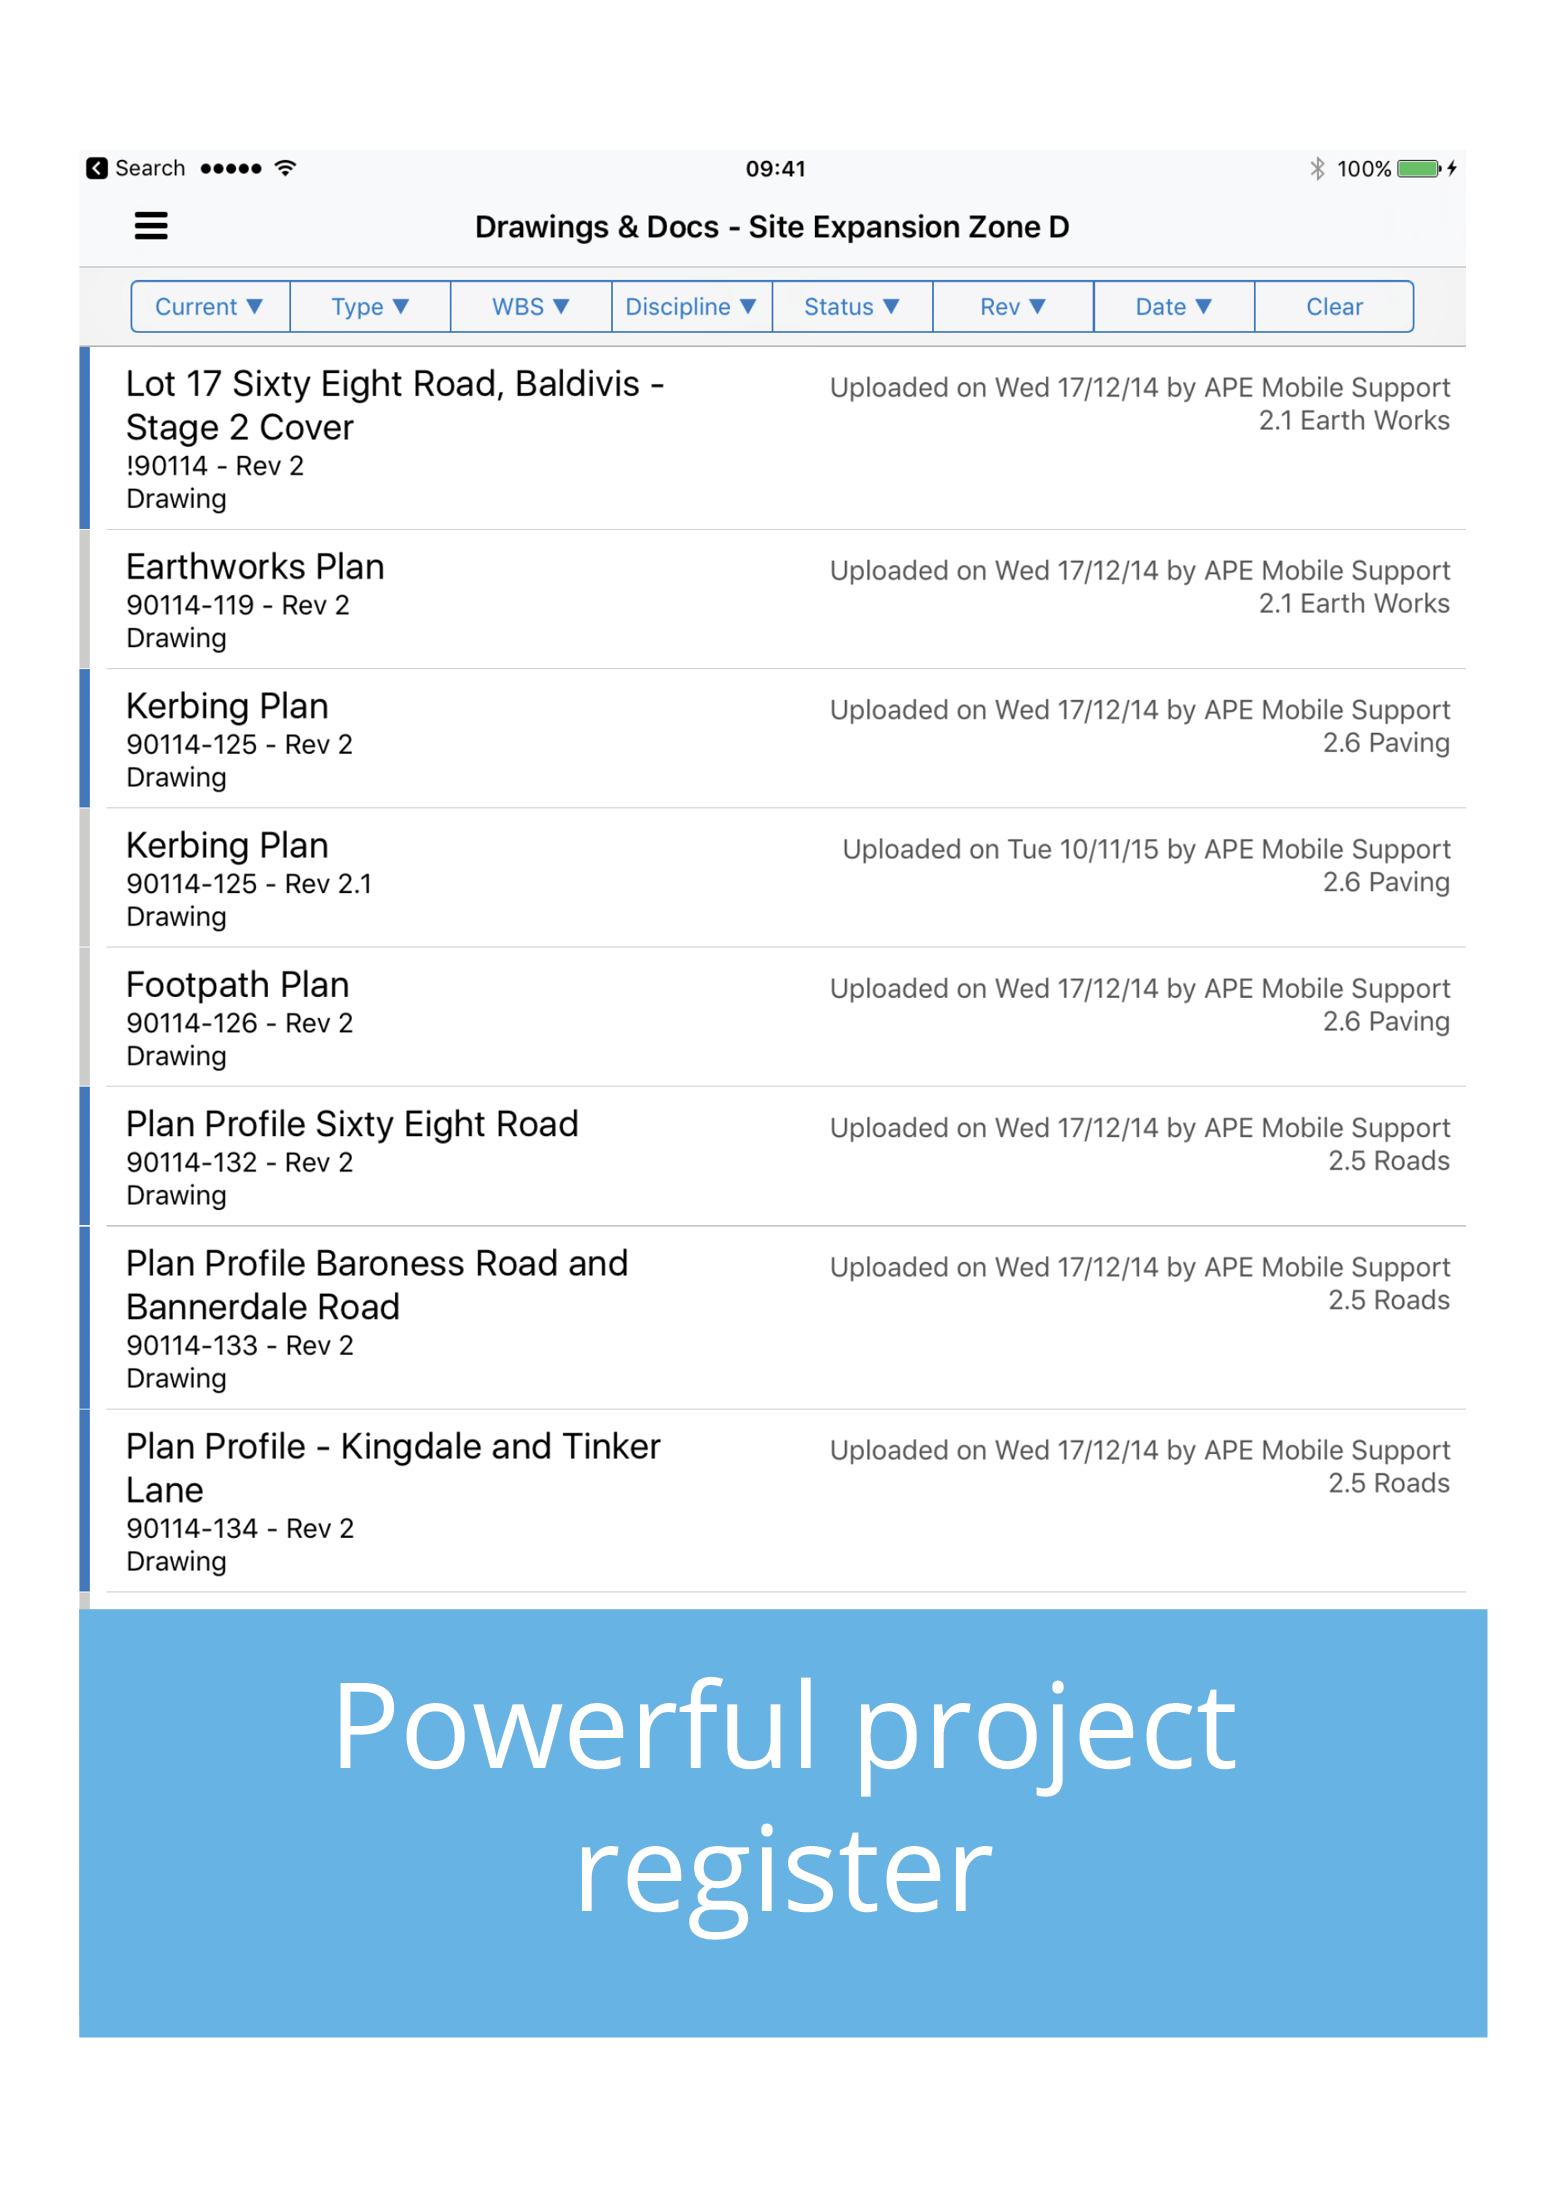 Powerful project register final1